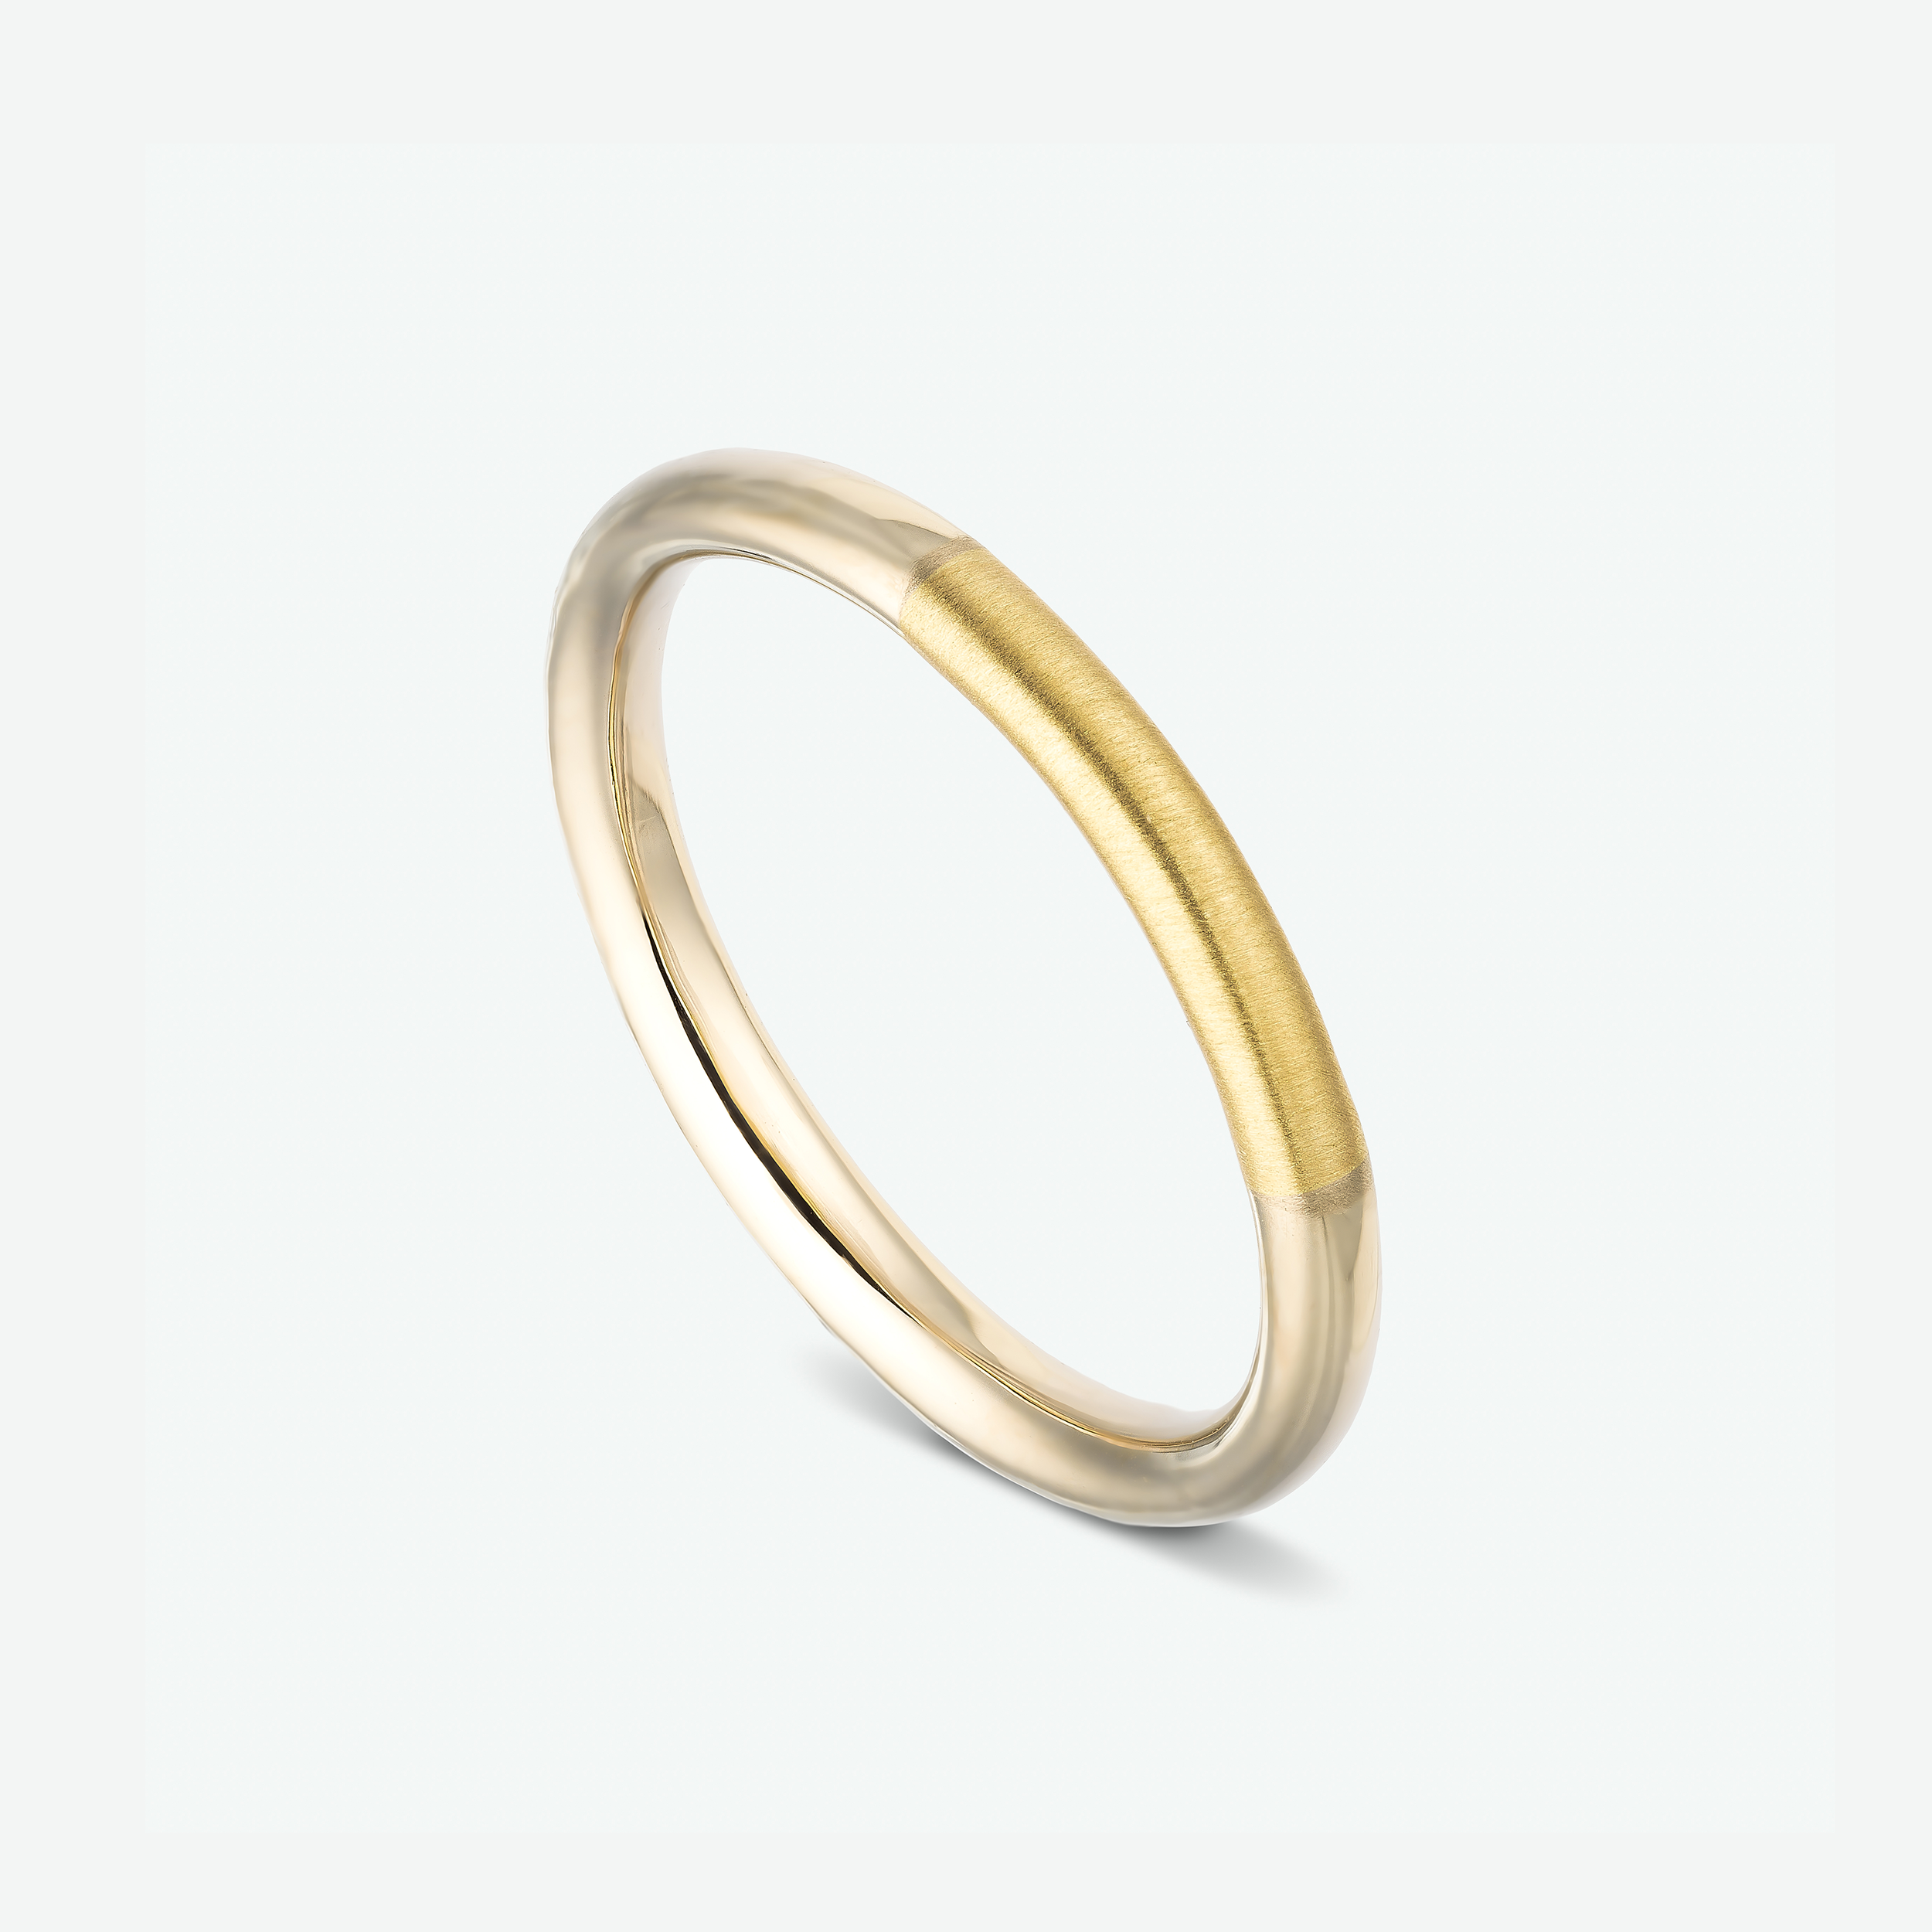 This delicate and unique wedding ring is composed of 14k white and yellow gold, fused together.